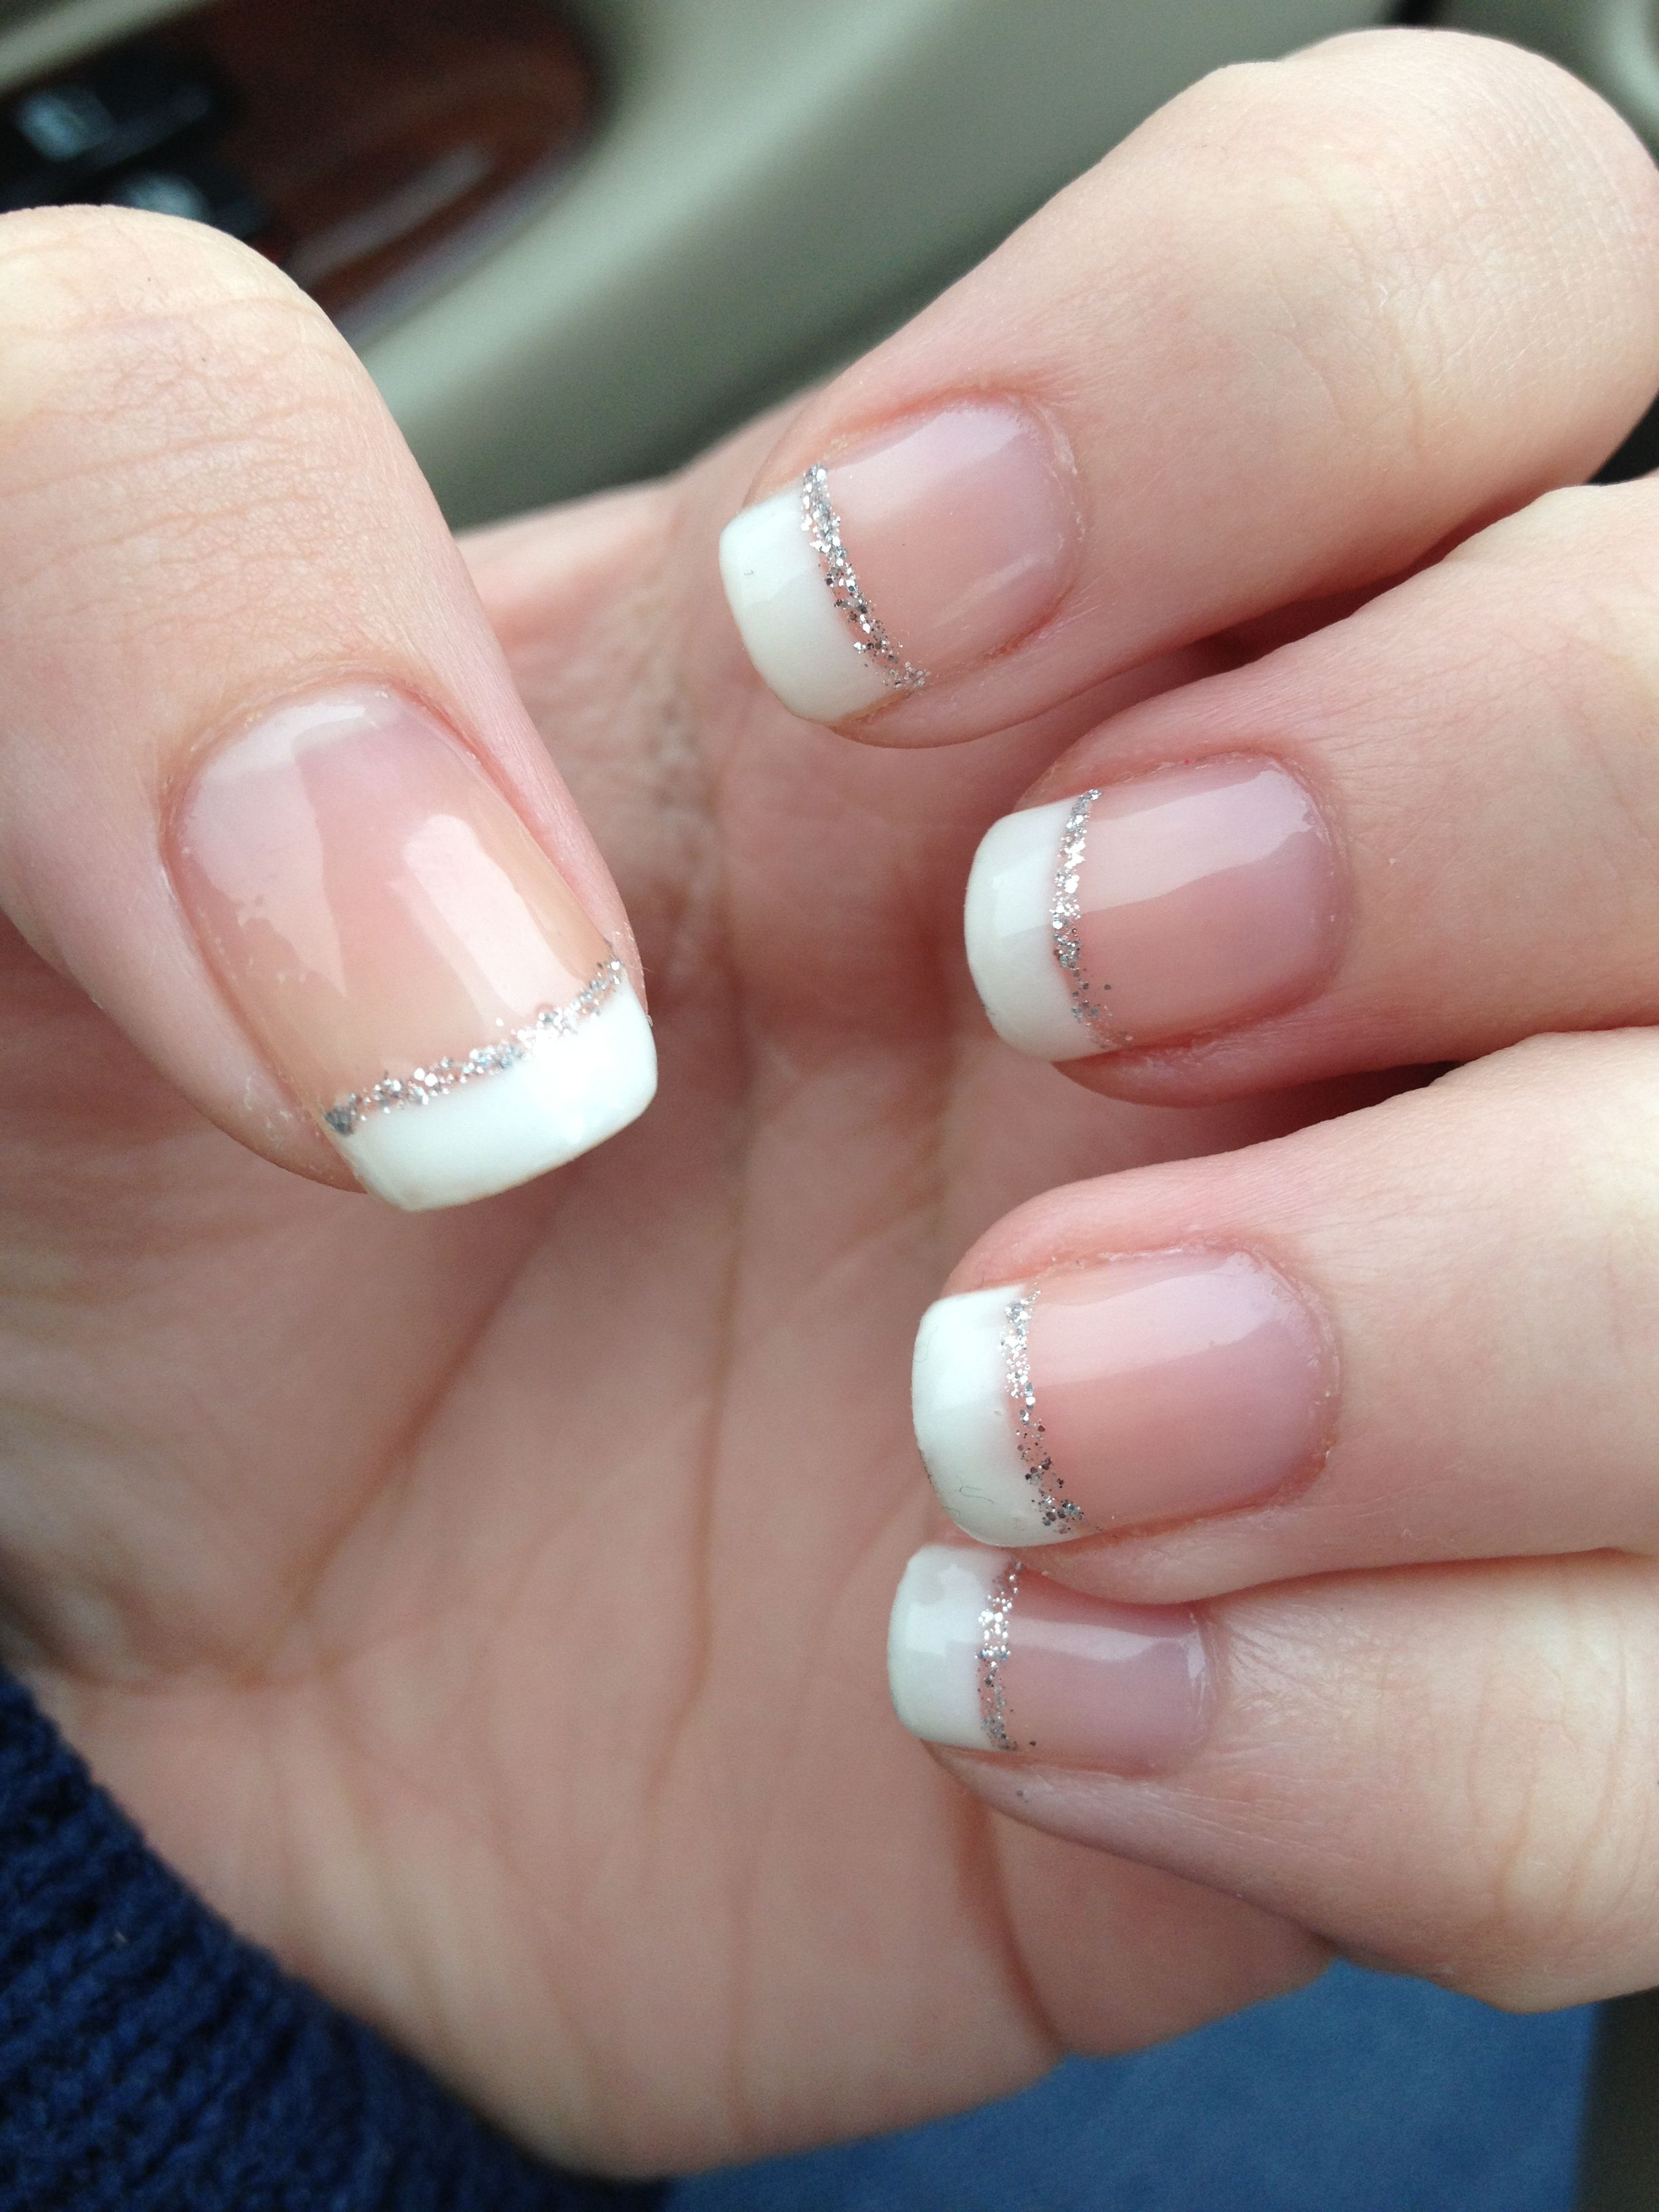 My gel nails for prom :) French tips with a line of silver glitter ...